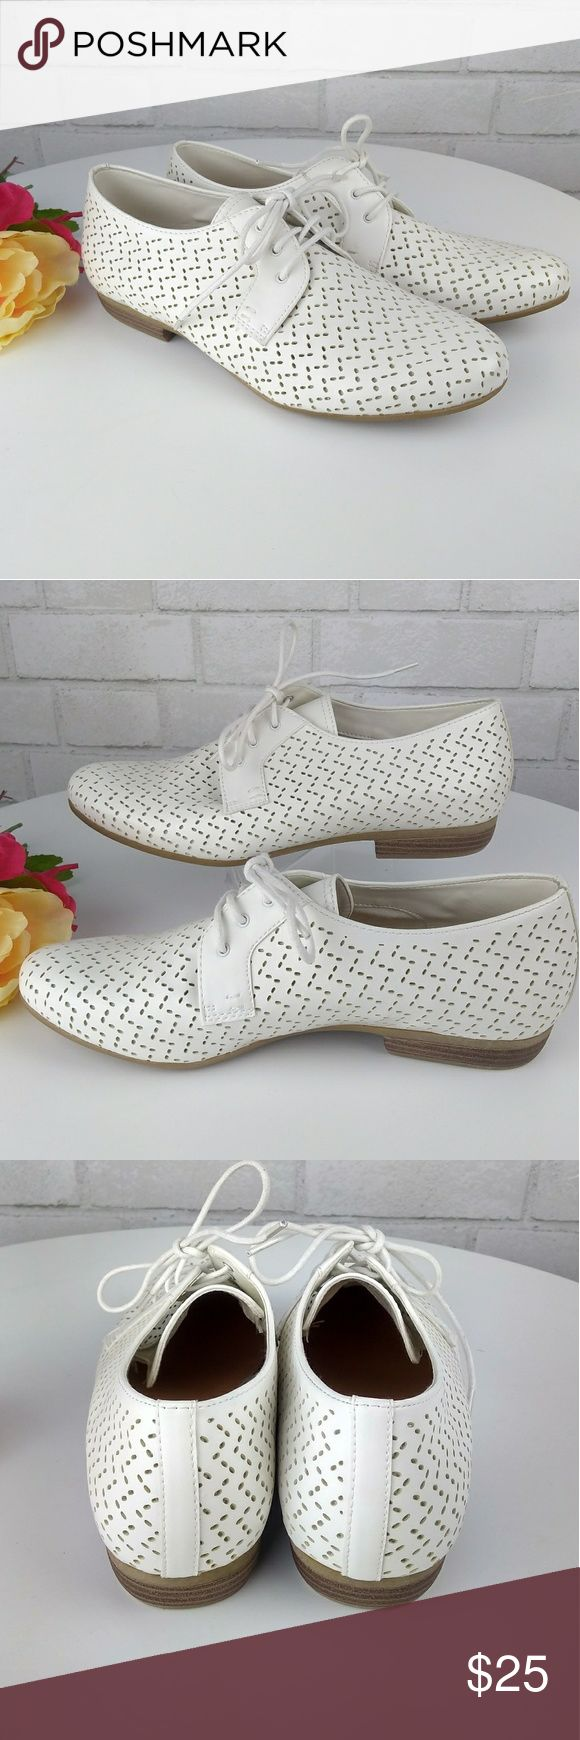 NWOB White Lace Oxford Women's Brand New never worn. Size 8.  Delicate white oxfords. All man made materials.  Pet and smoke free No trades sophie17 Shoes Flats & Loafers